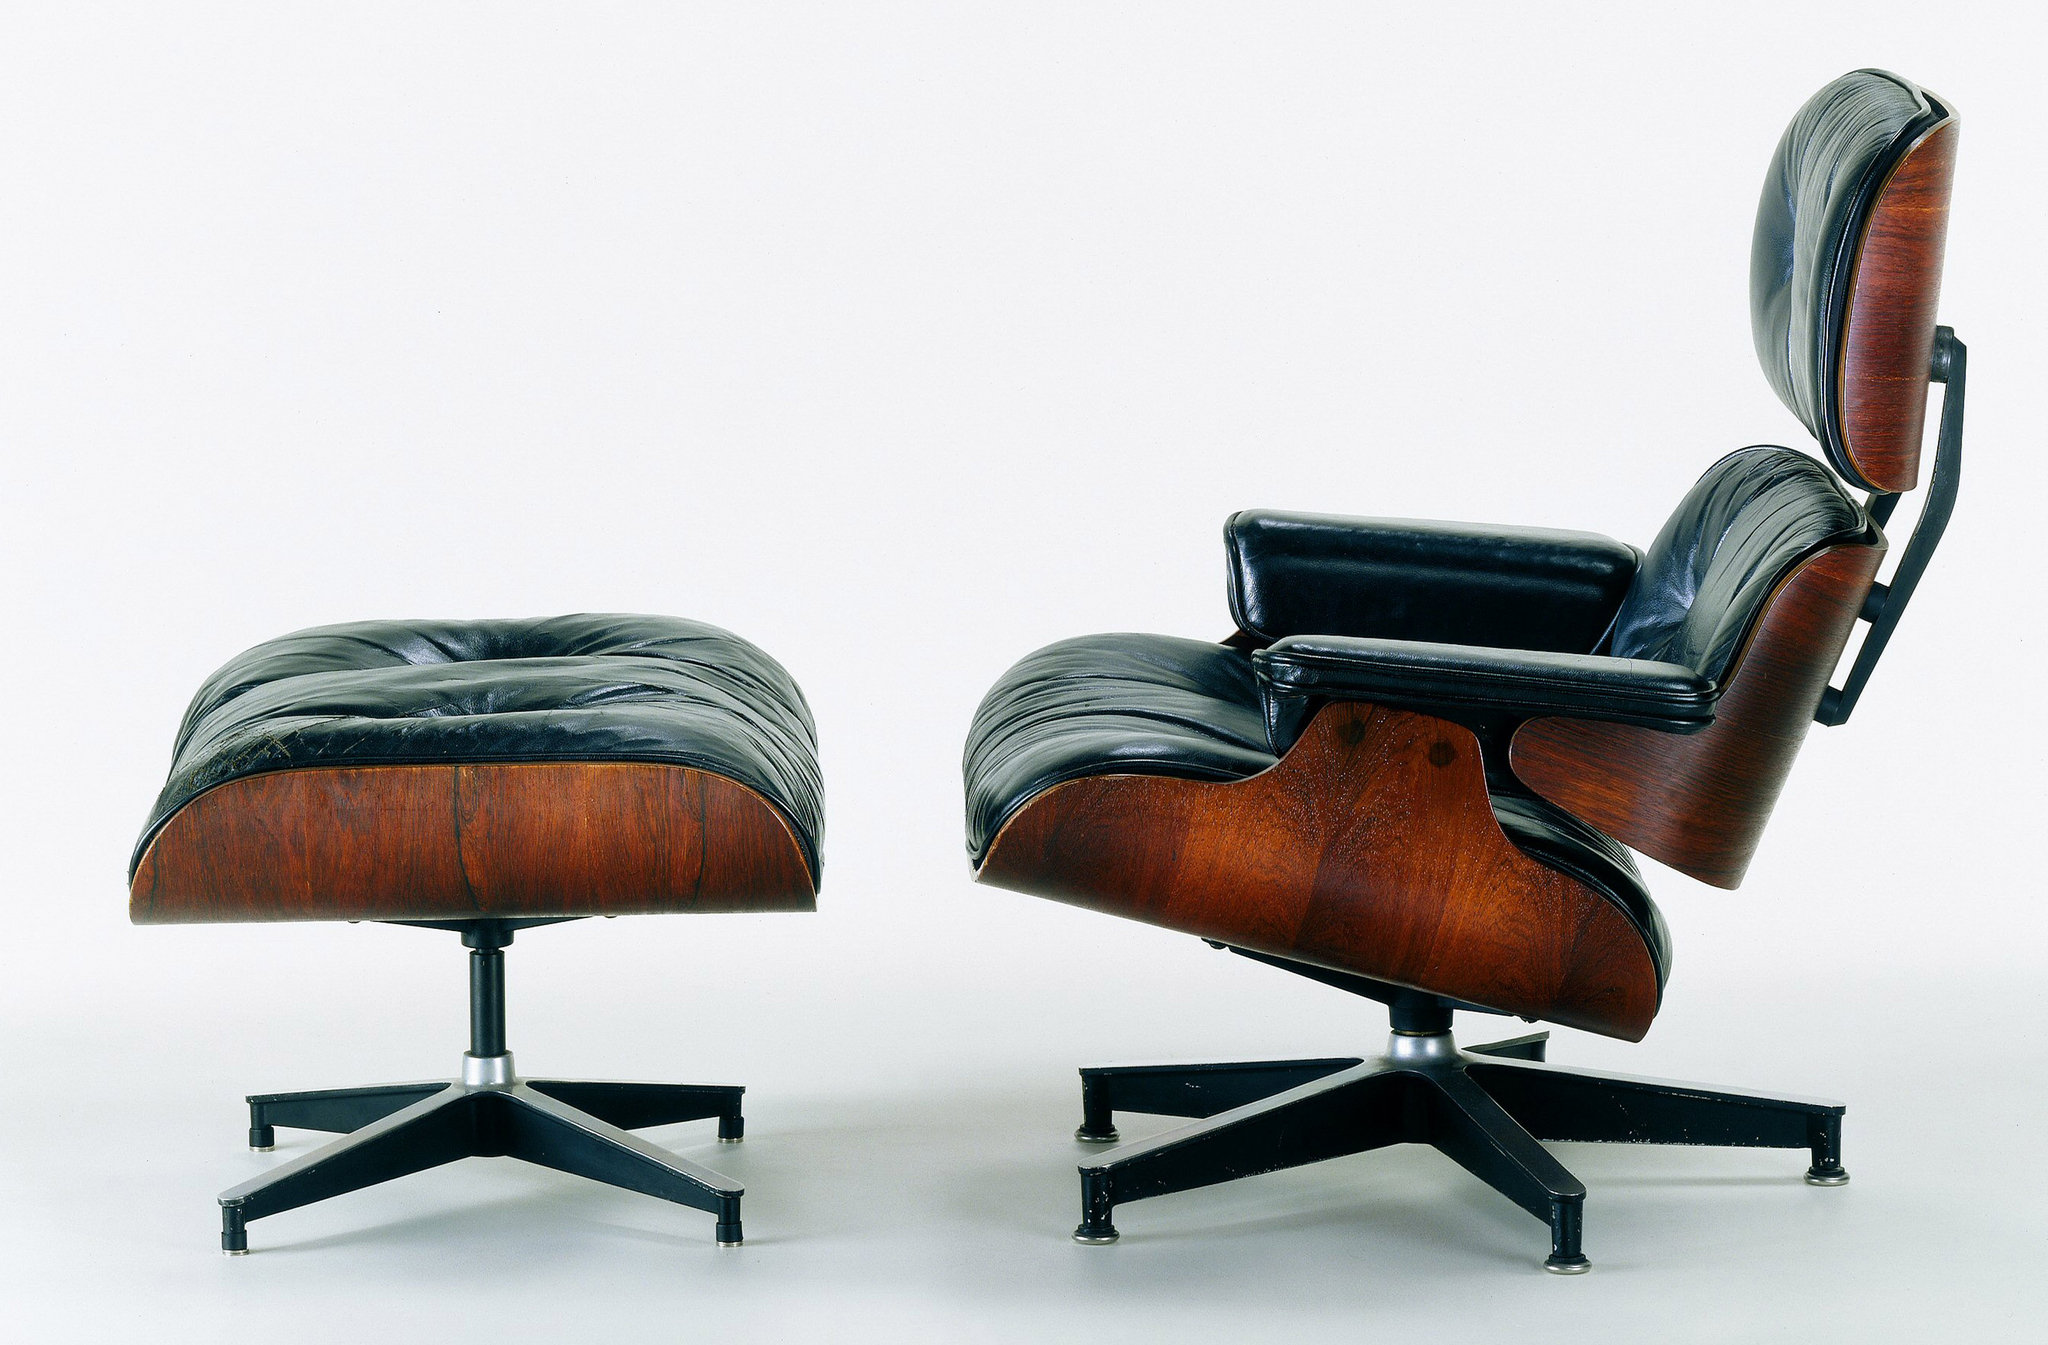 Lounge Sessel Eames Herman Miller Sues Canadian Company For Selling Iconic Eames